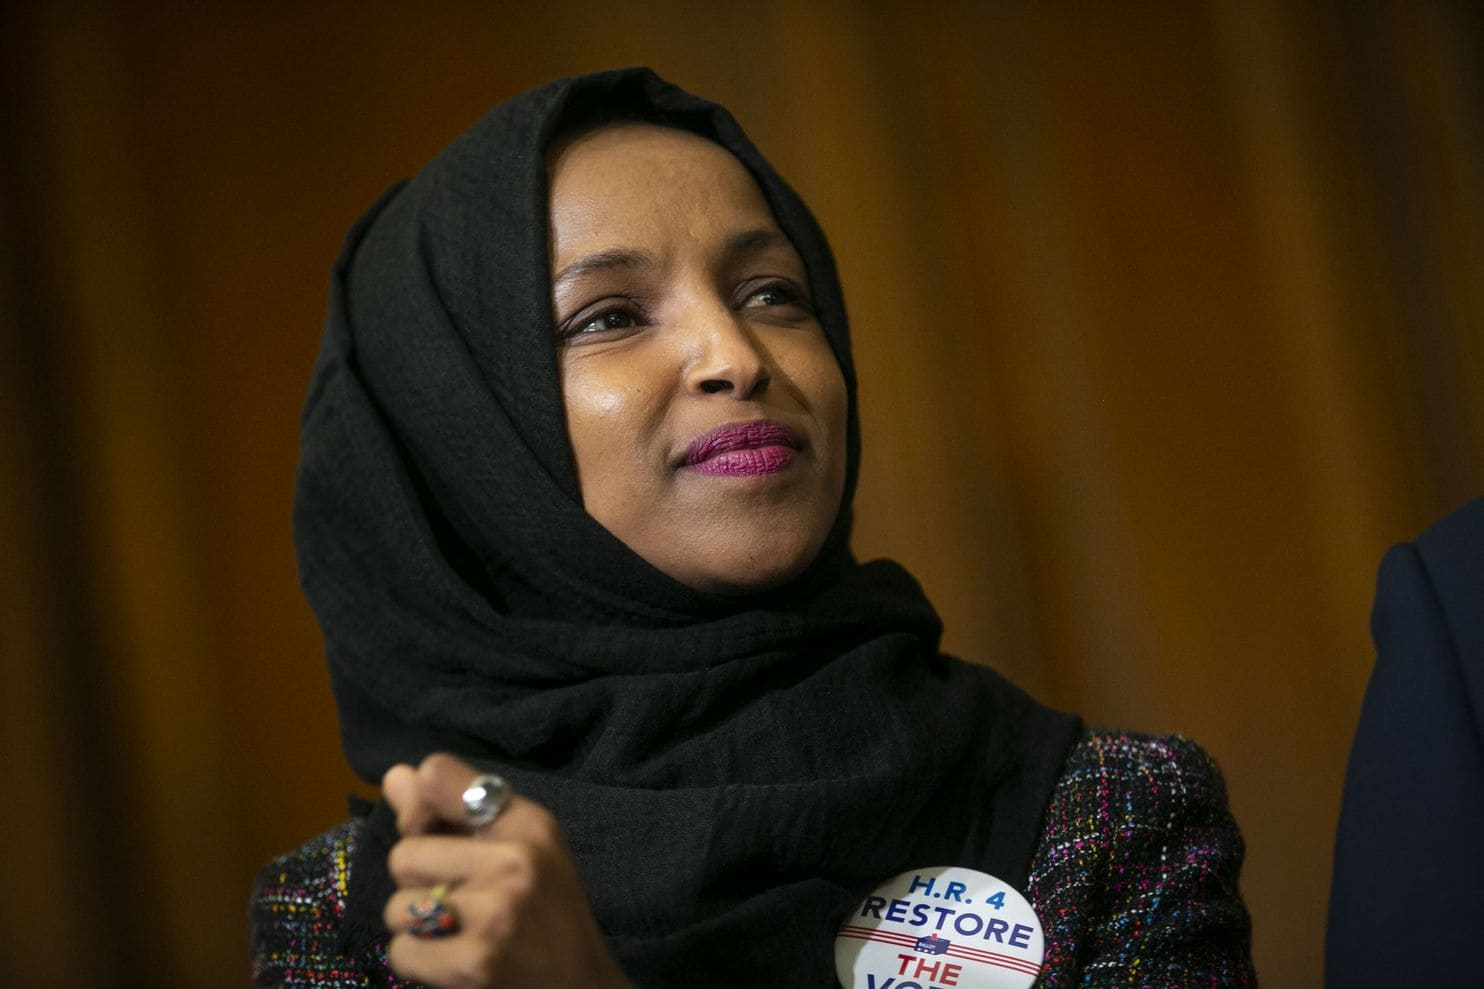 Want to combat hate? Stop the hazing of Ilhan Omar and start listening.